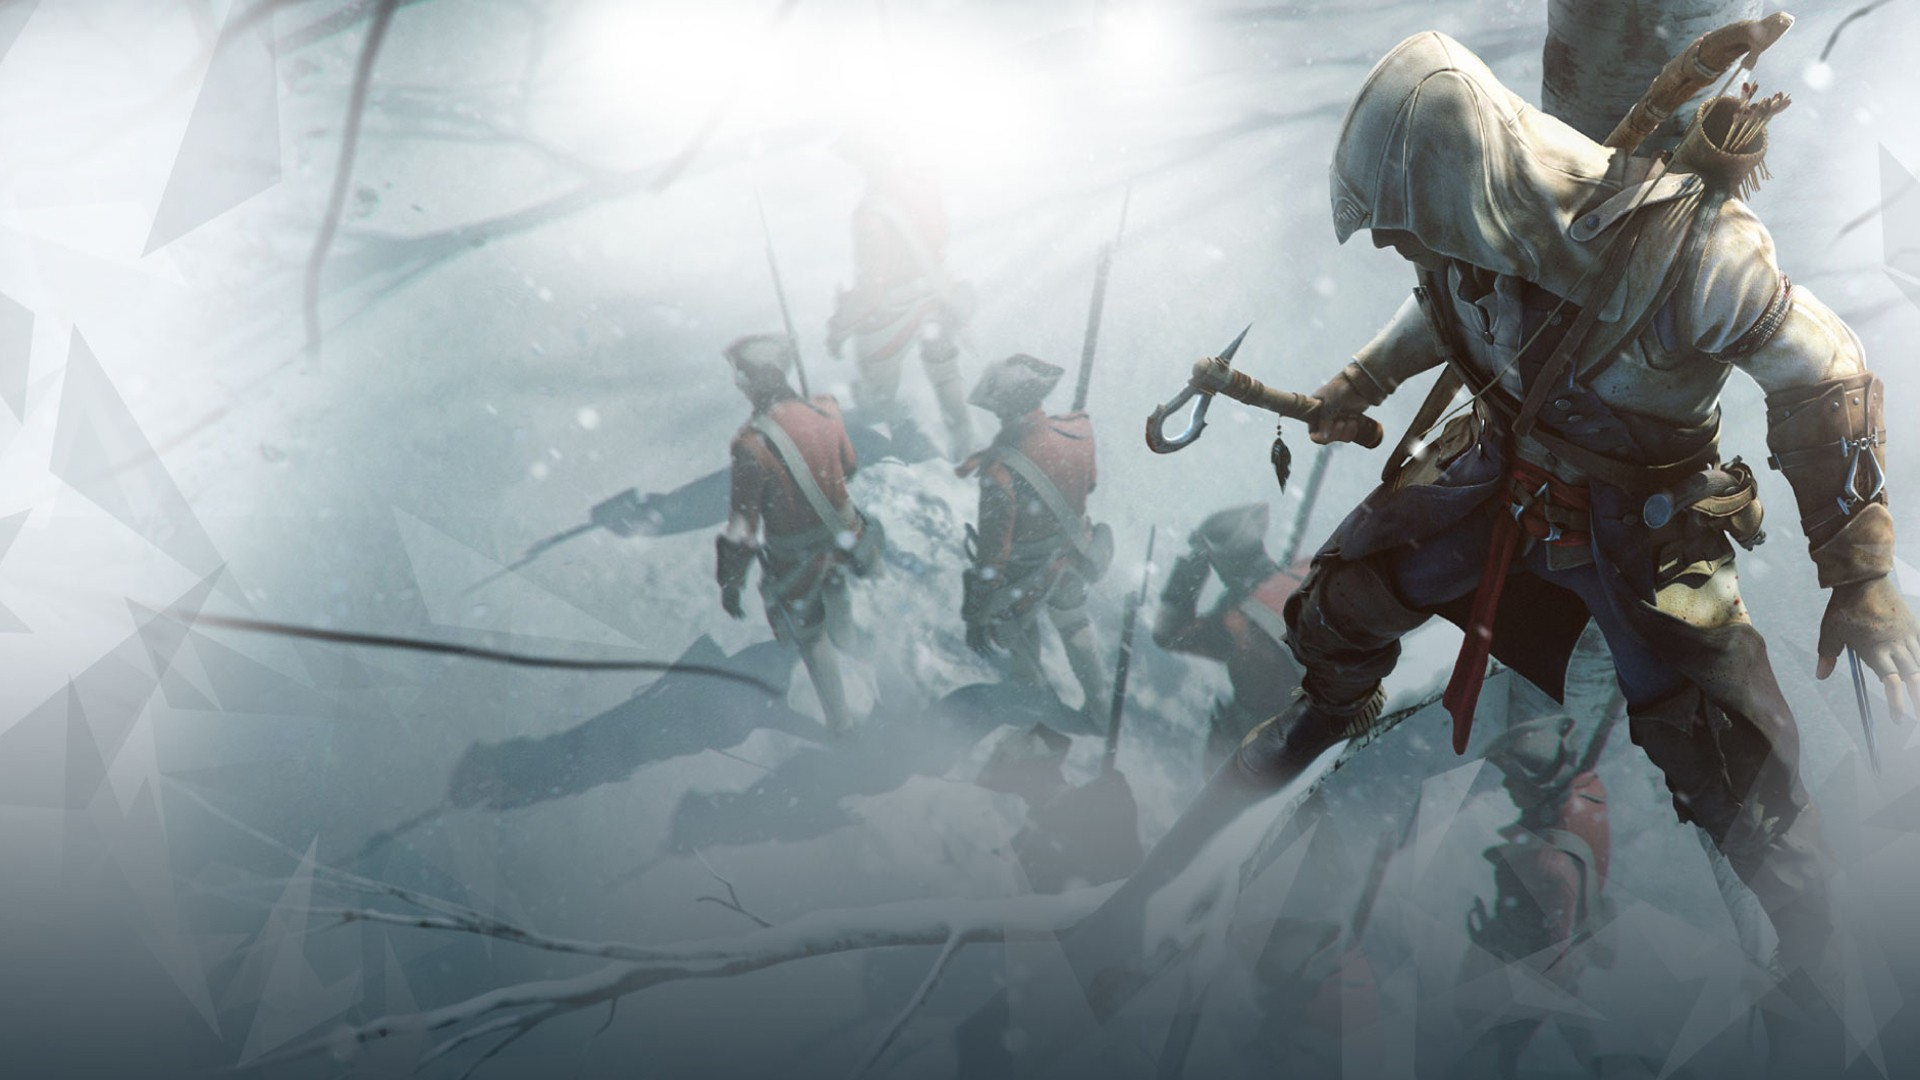 Free Download Assassins Creed 3 Wallpapers Gamestricky 1920x1080 For Your Desktop Mobile Tablet Explore 56 Assasins Creed 3 Wallpaper Assassin S Creed 3